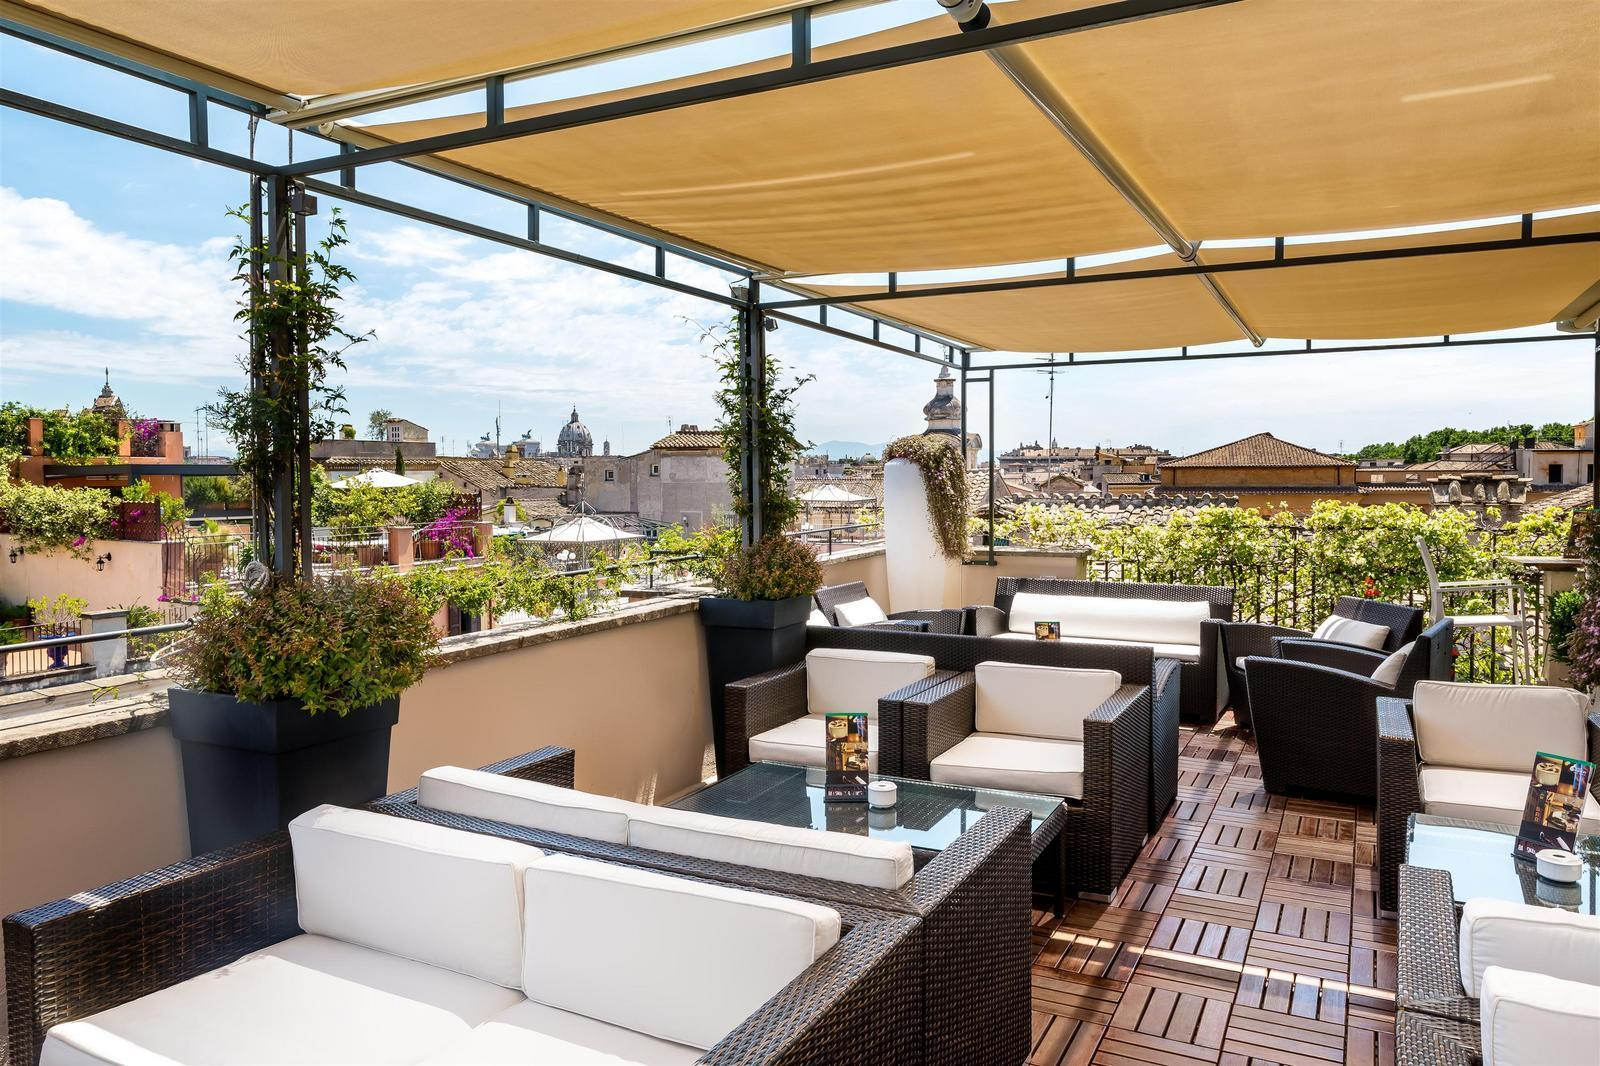 1505899053_ROMSG_-_I_Sofa_Bar_Restaurant_Roof_Terrace_16.jpg